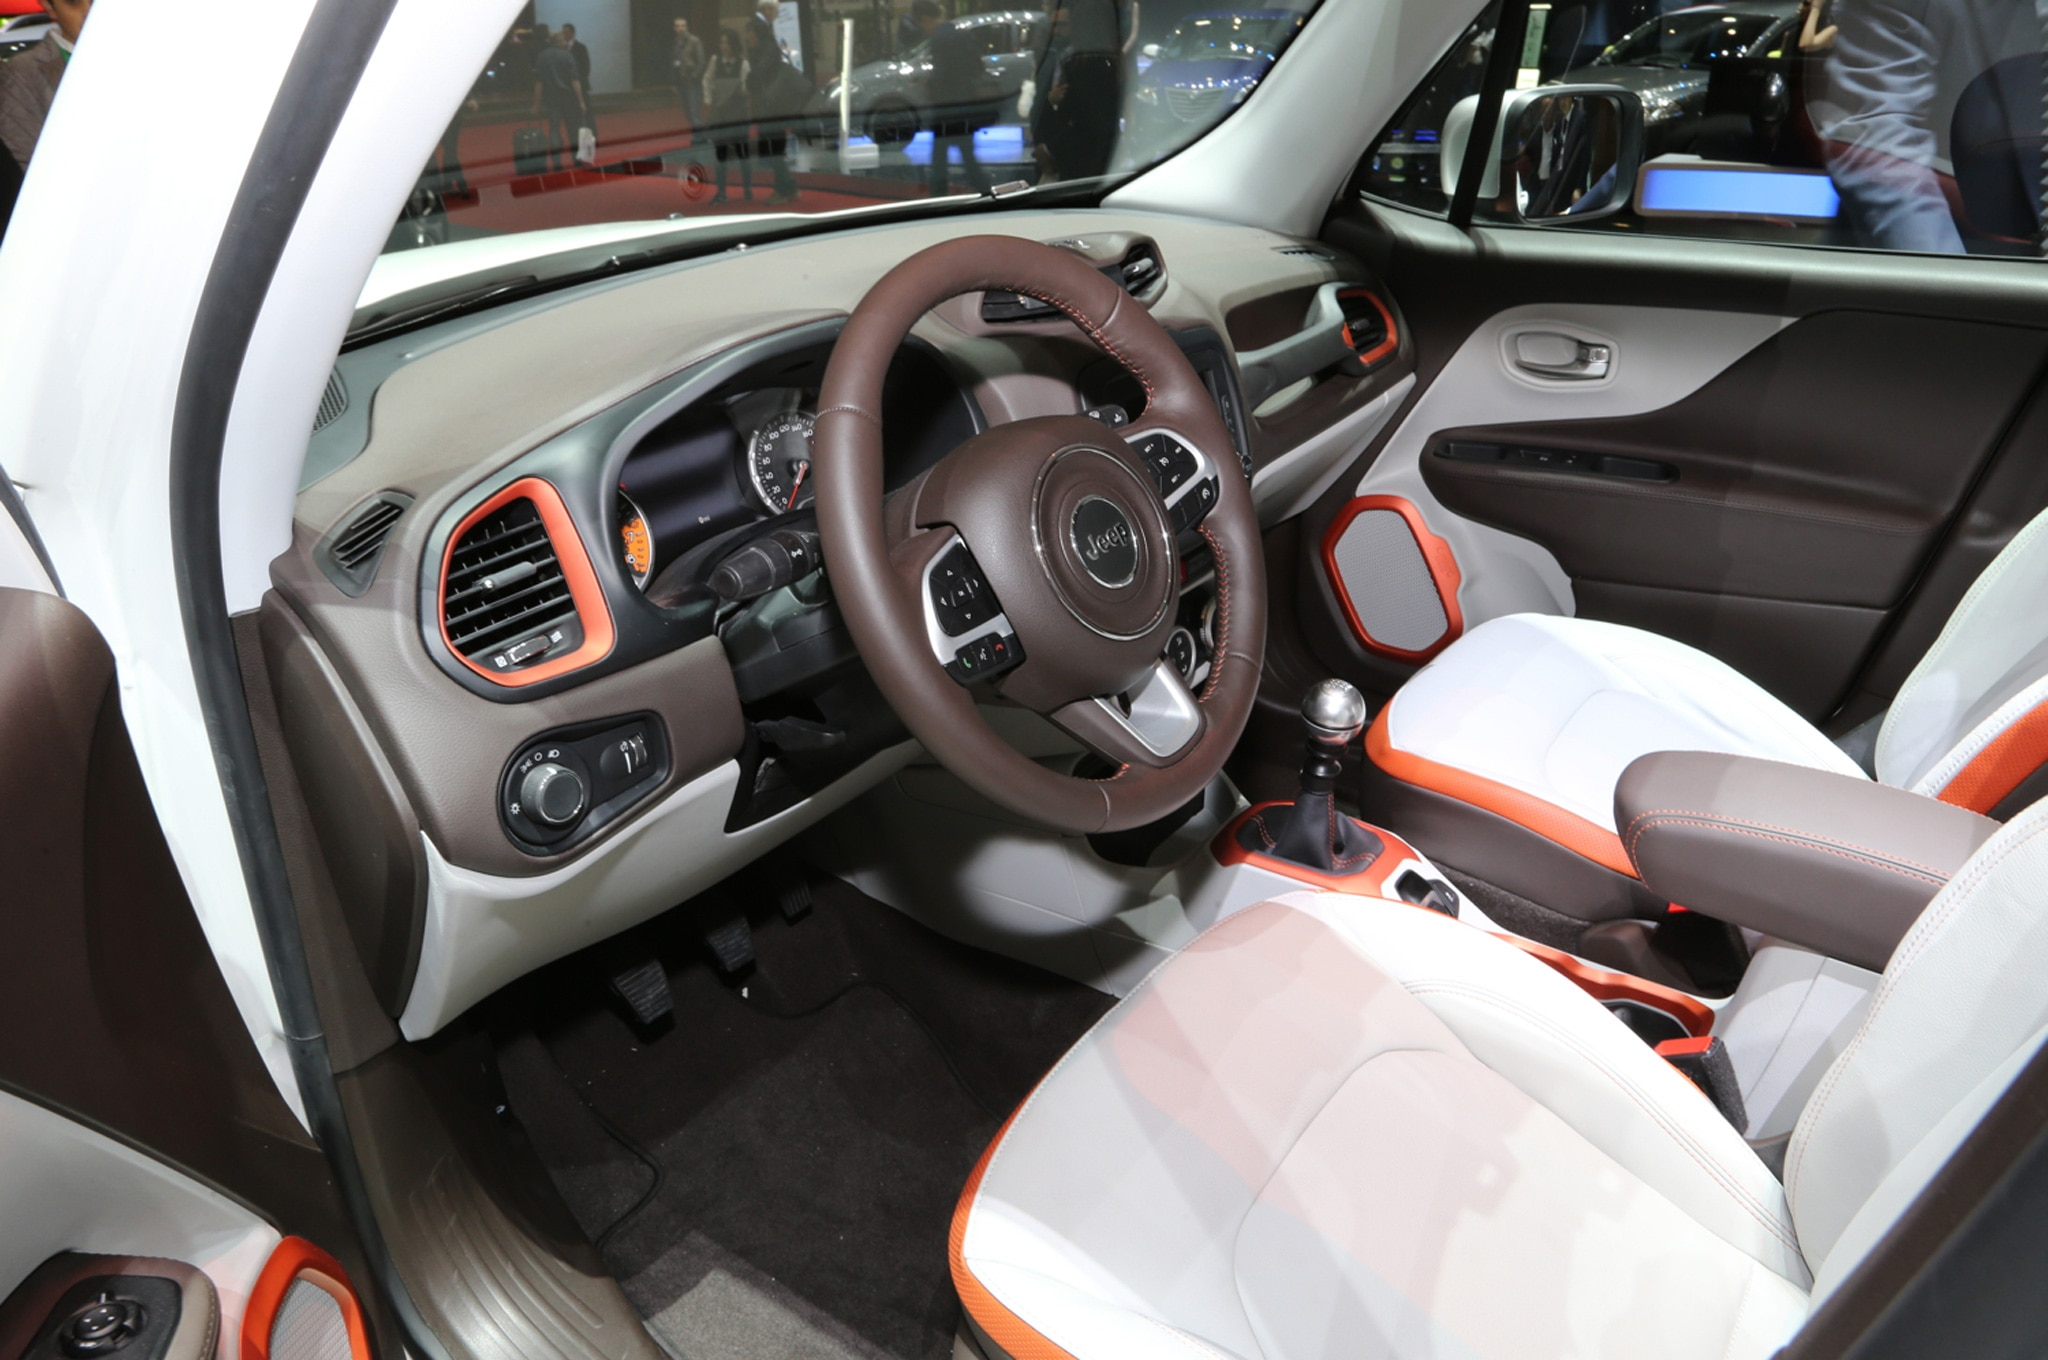 2015 Jeep Renegade Limited interior